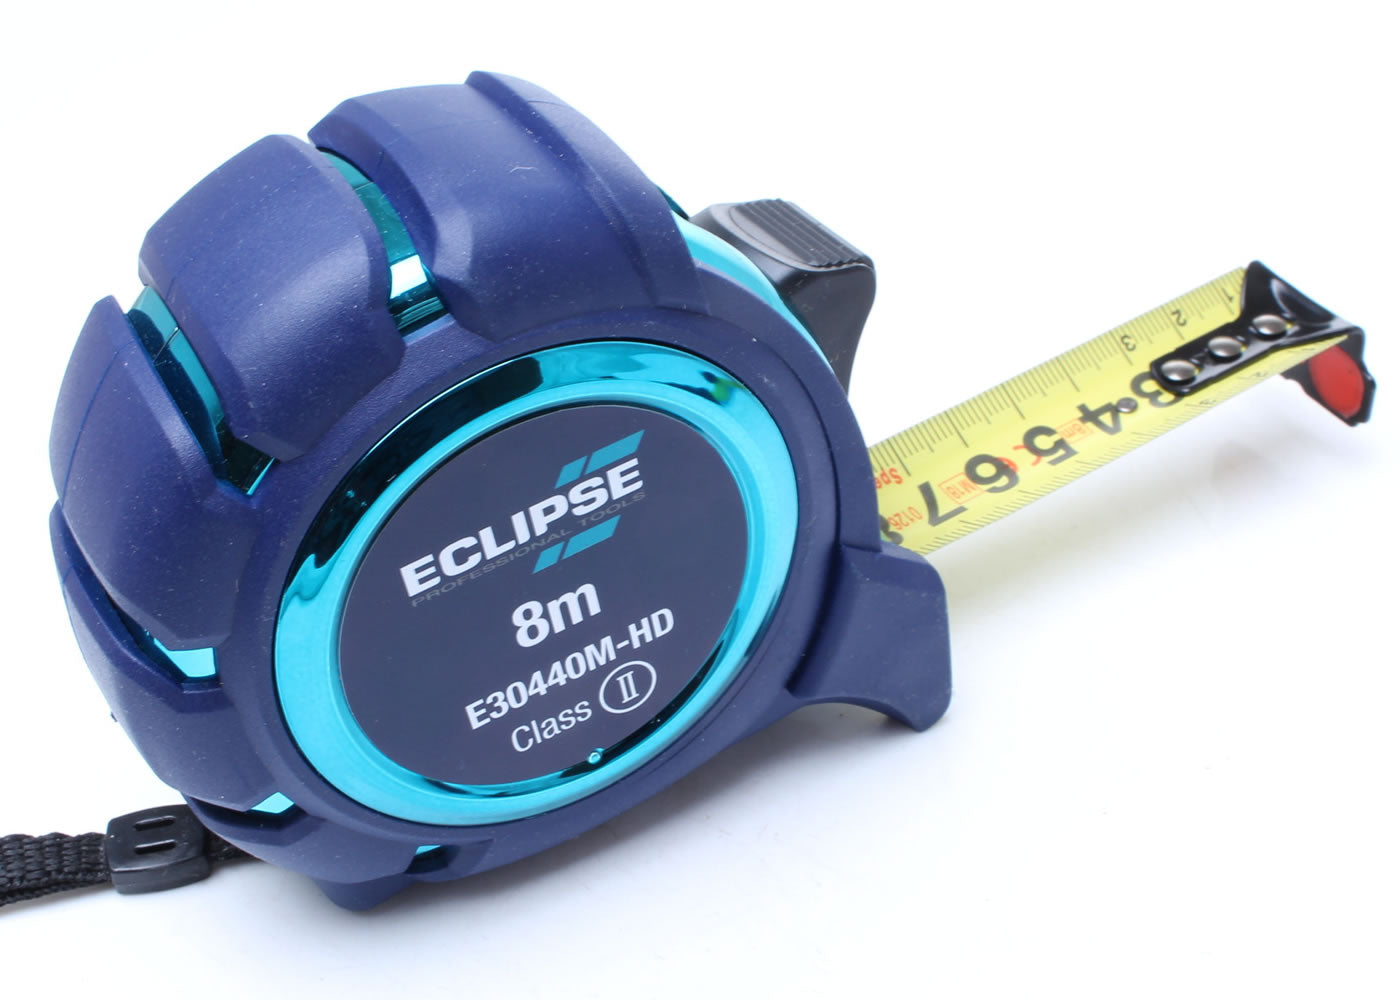 Eclipse Heavy Duty Tape Measure - Metric